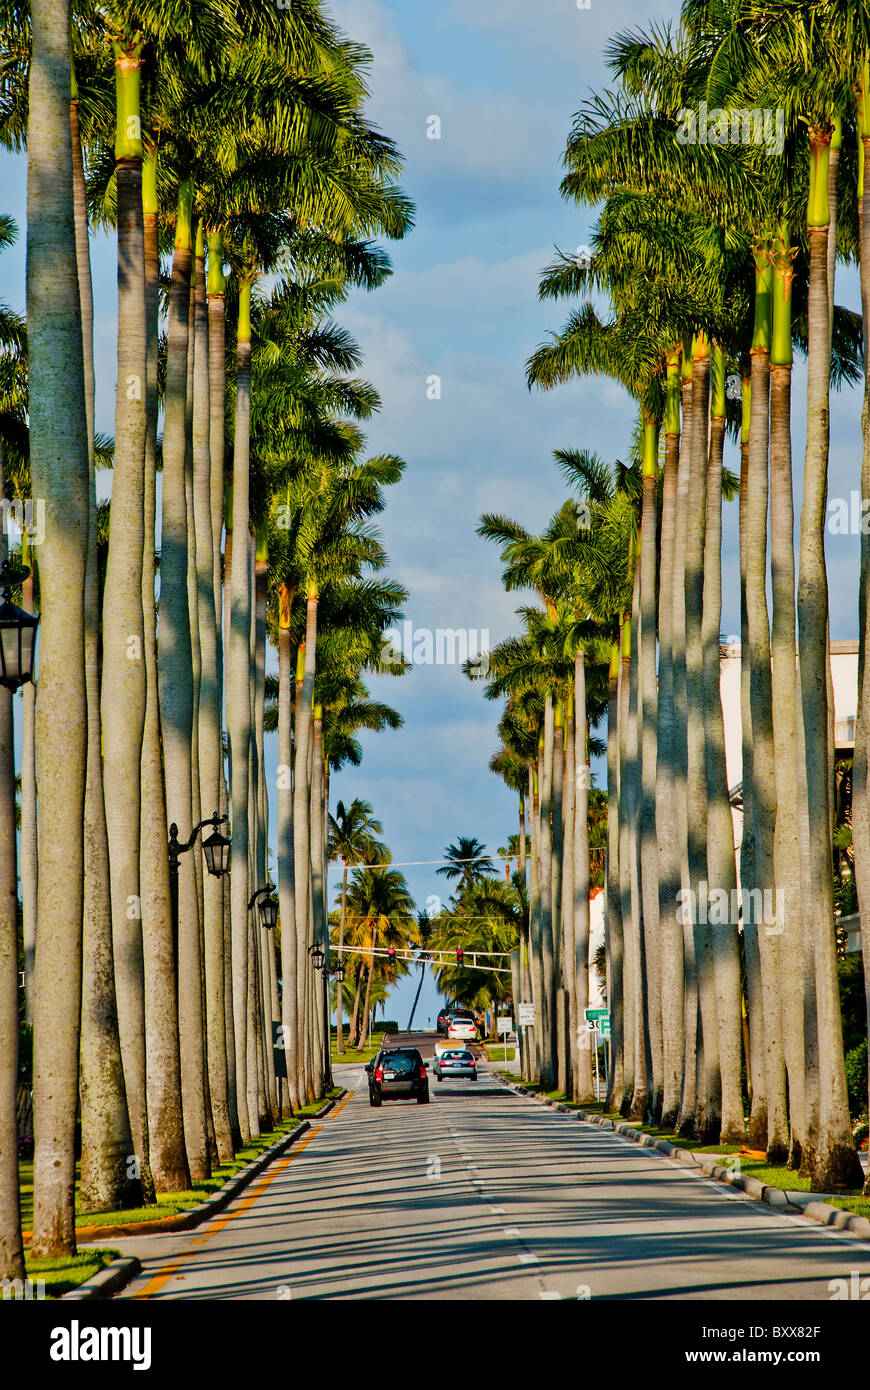 Royal Palms lining both sides of 'Royal Palm Way', a street in Palm Beach, Florida, USA - Stock Image